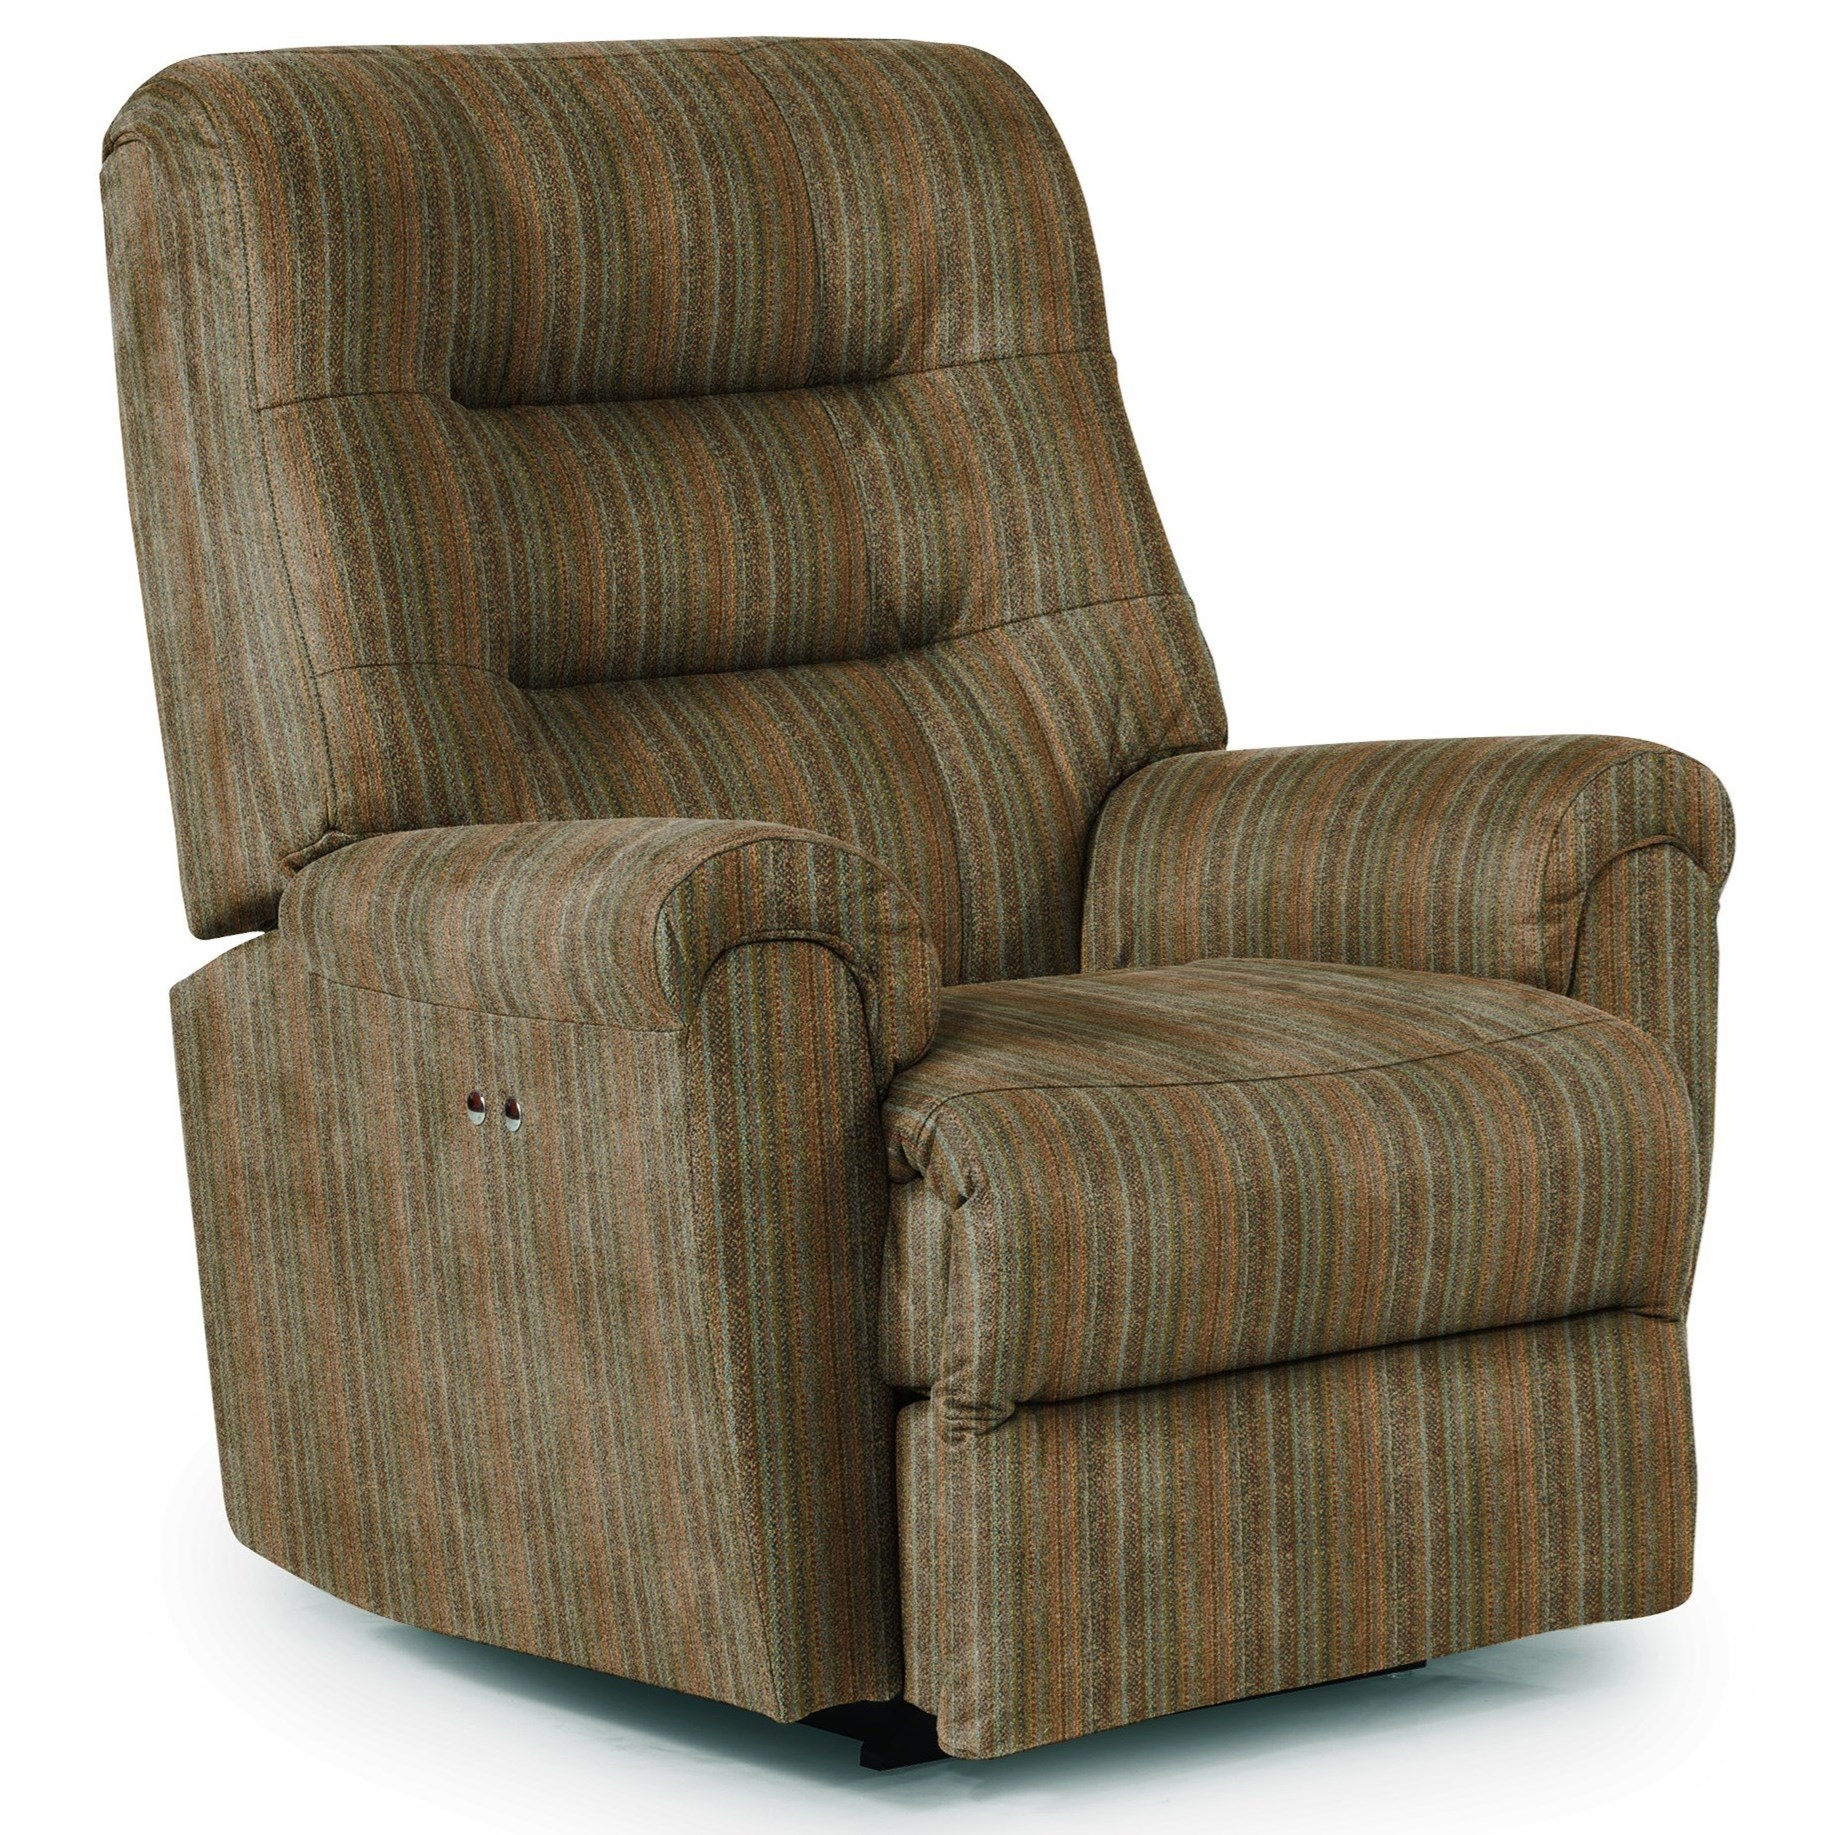 Best Home Furnishings Recliners - Medium Langston Power Space Saver Recliner - Item Number: -677908475-25564